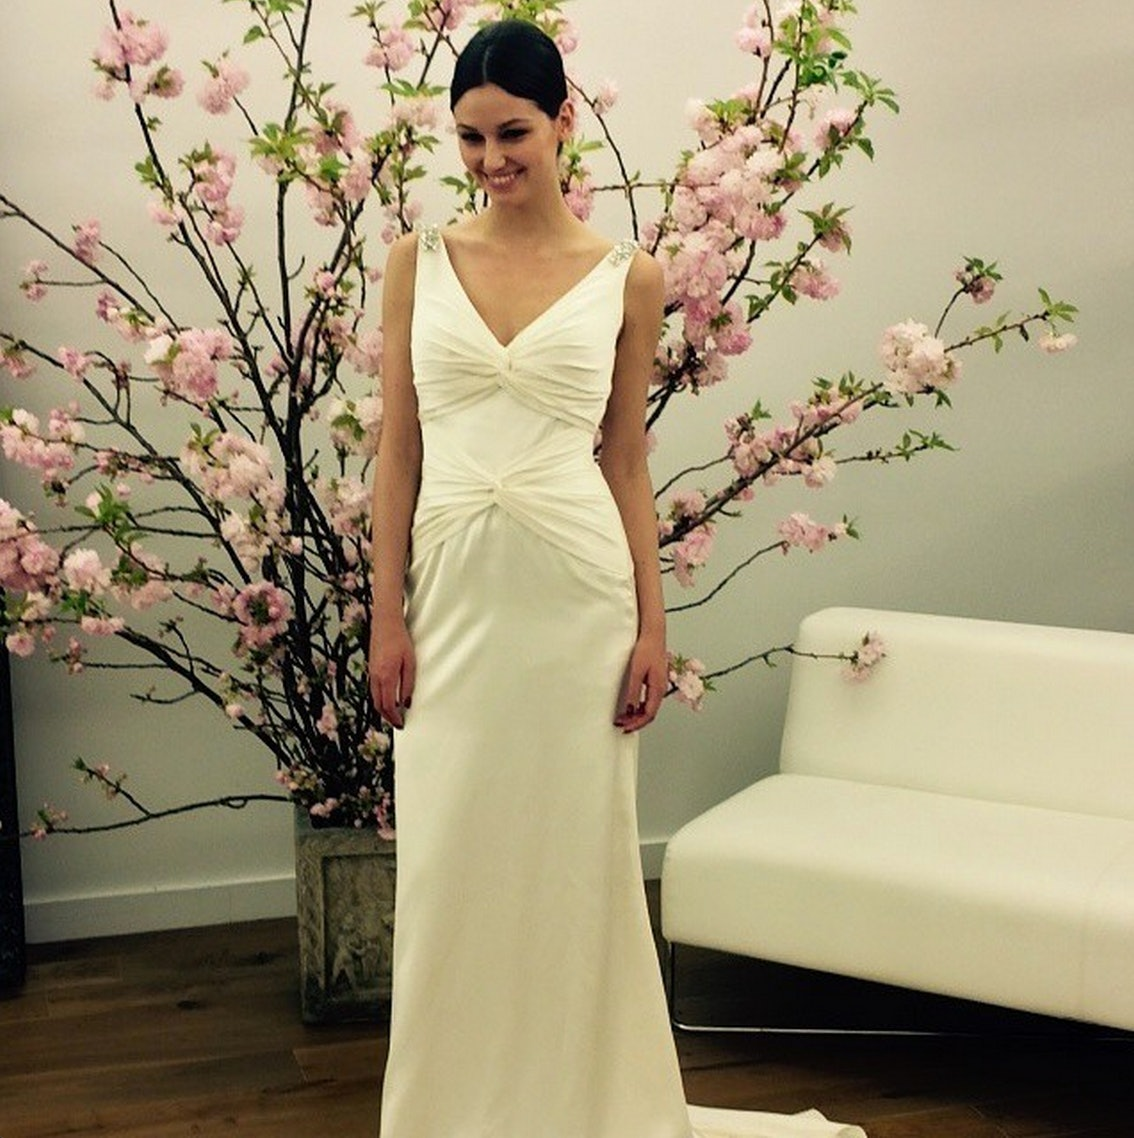 truly zac posen spring collection for davids bridal includes everything from black wedding gowns to zac posen wedding dresses Truly Zac Posen Spring Collection For David s Bridal Includes Everything From Black Wedding Gowns To Traditional Silhouettes